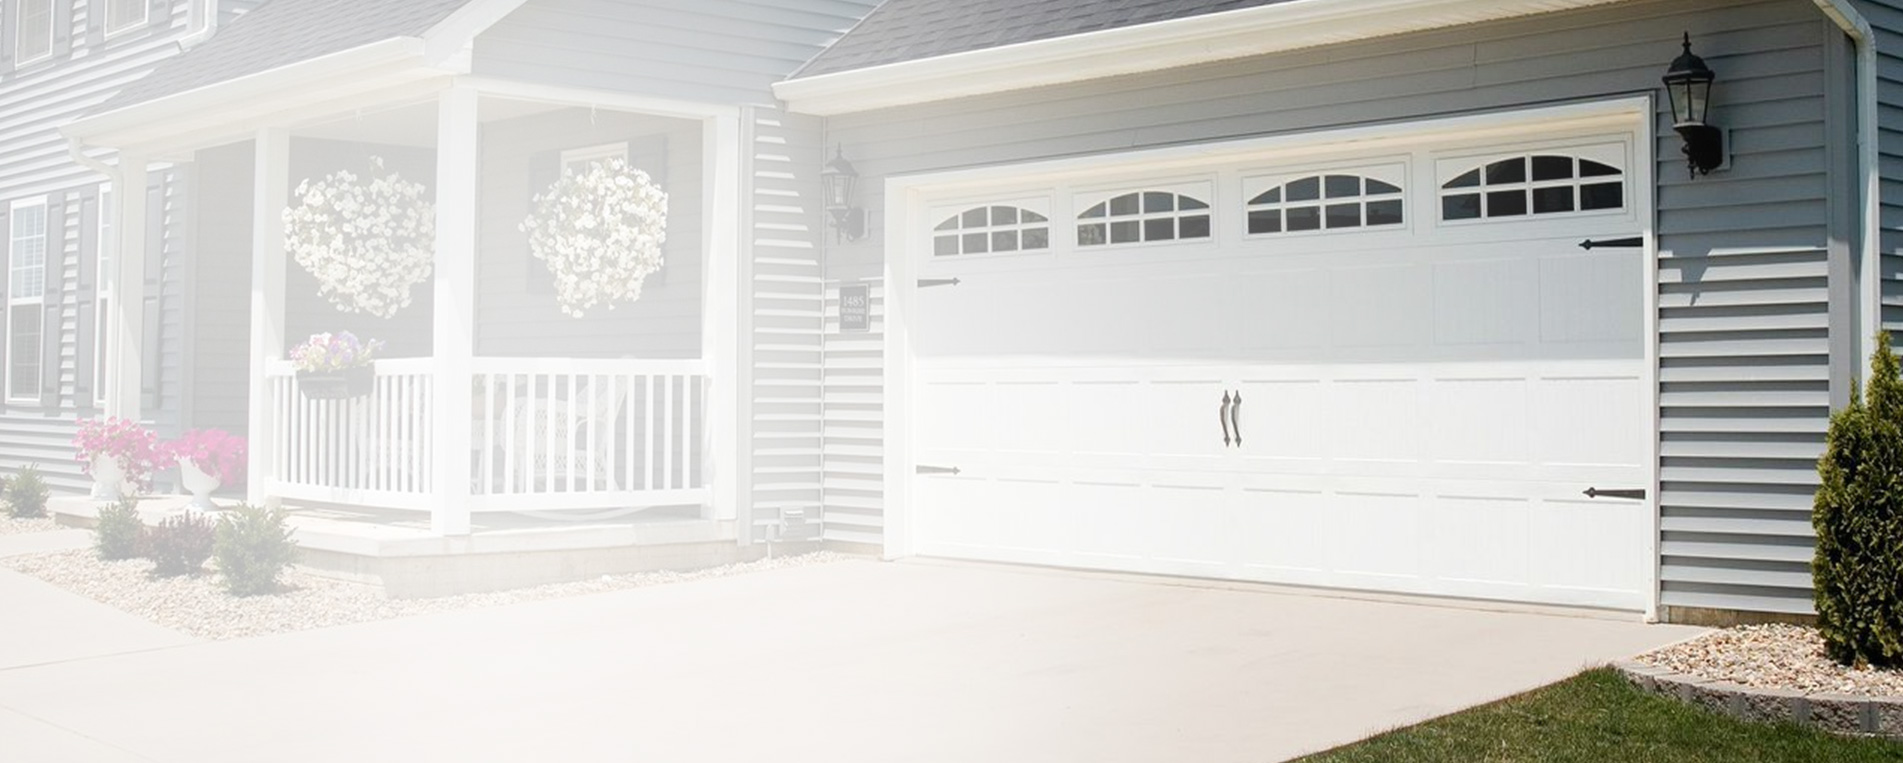 Garage Door Repair Minneapolis Gallery Design Ideas